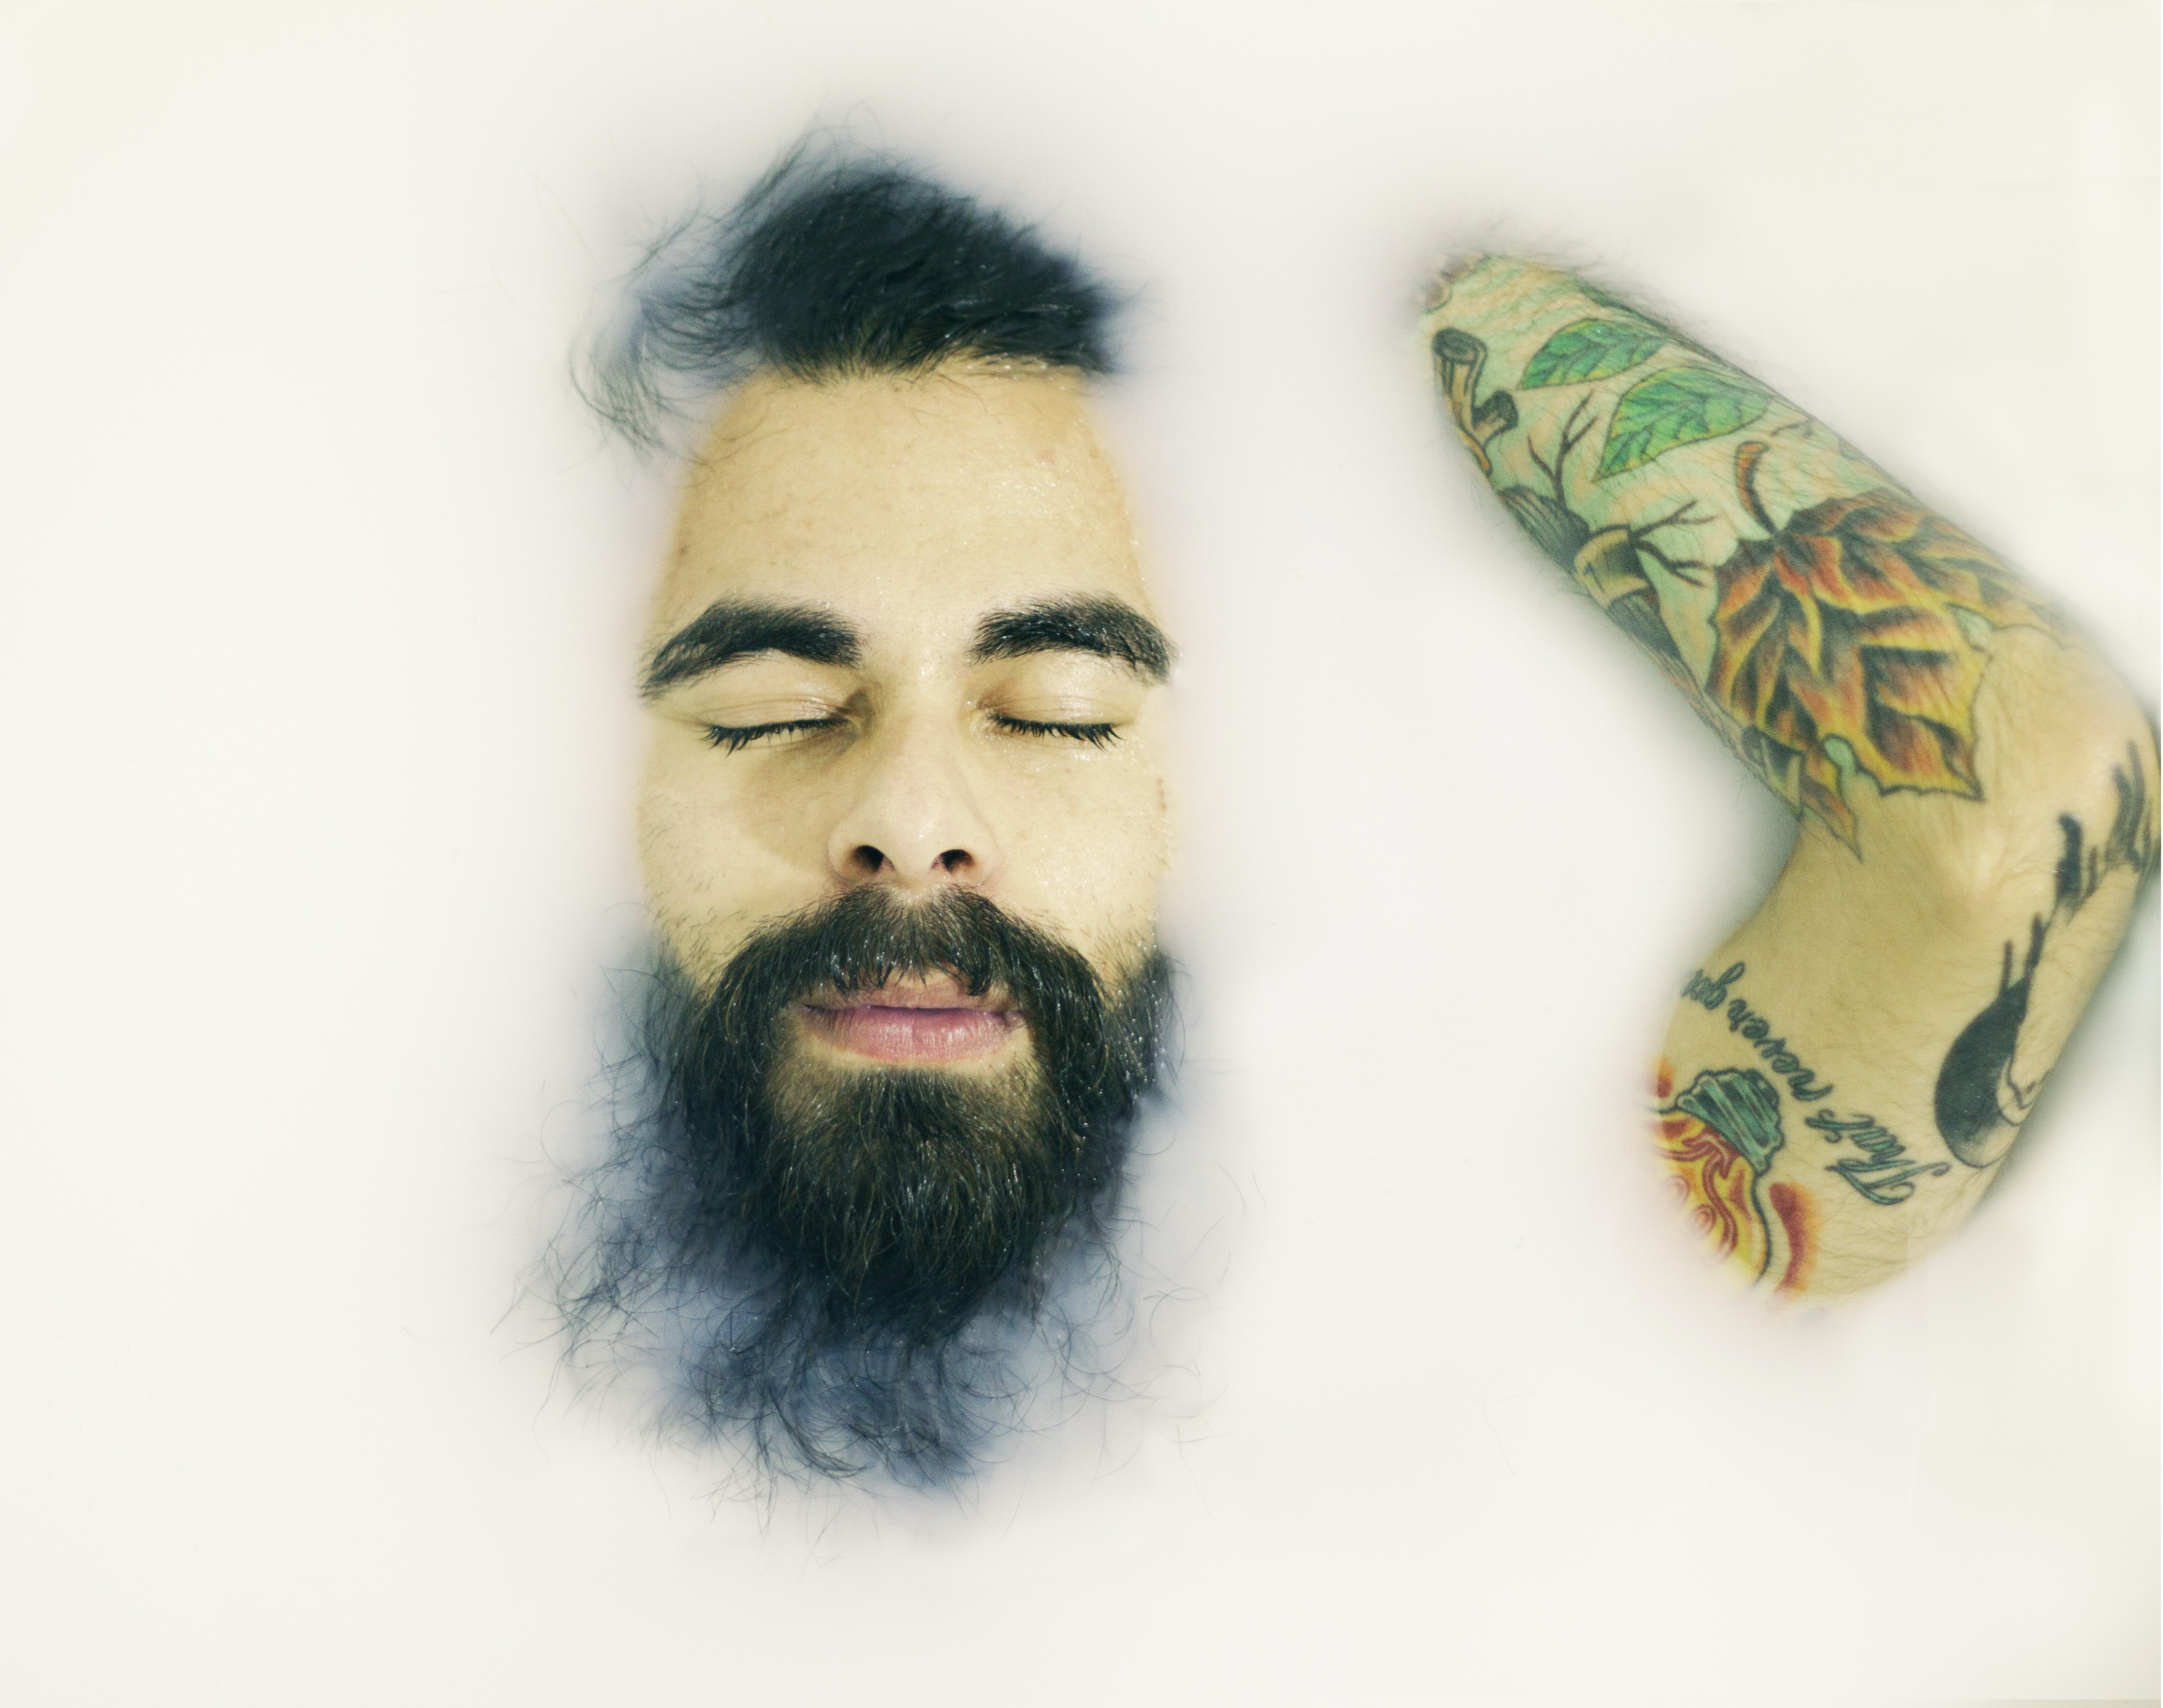 Man with a beard and arm tattoo laying with eyes closed in a milk bath